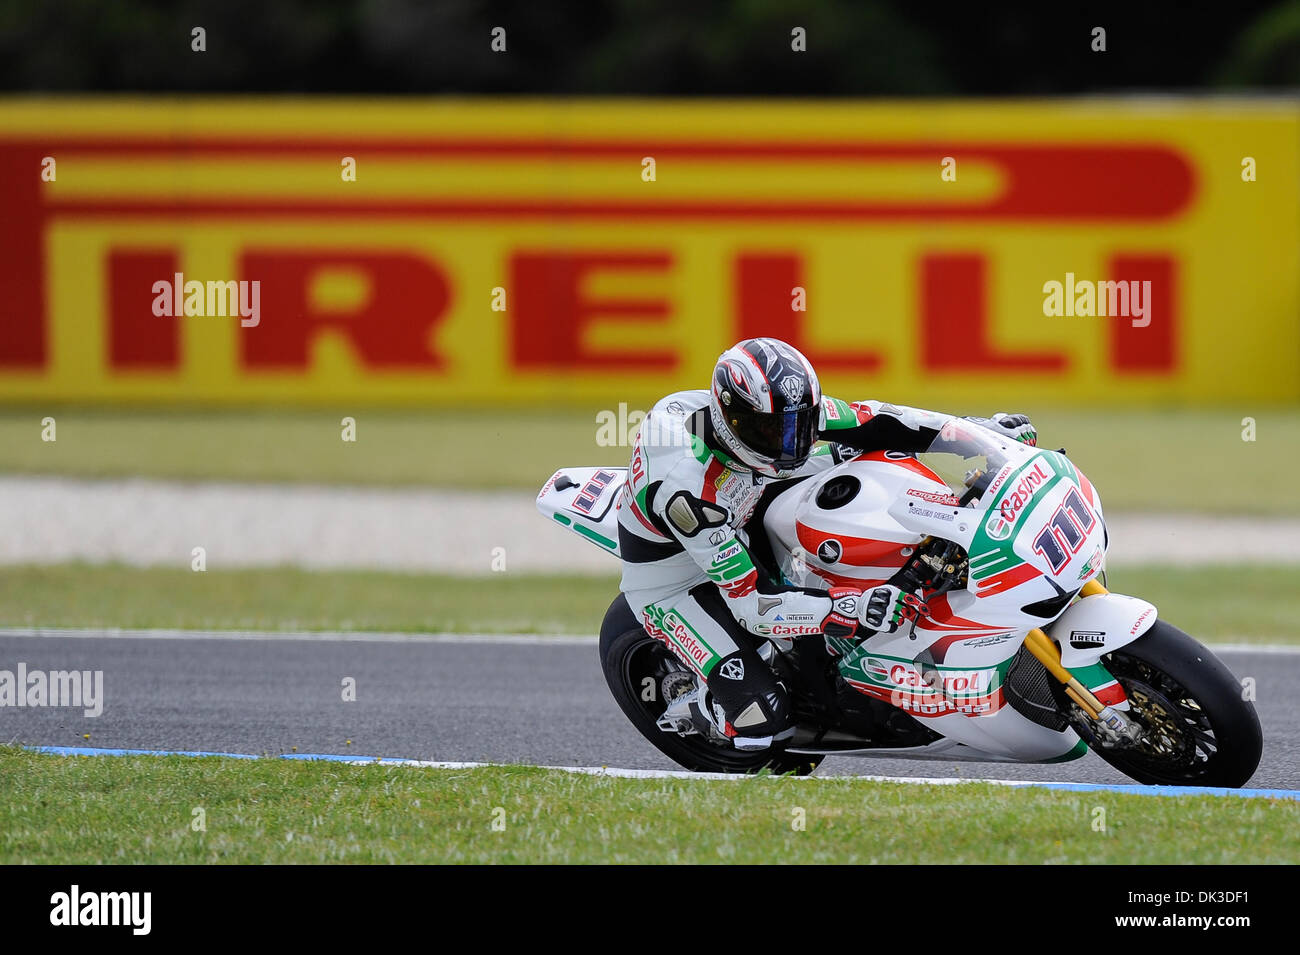 Feb. 27, 2011 - Phillip Island, Victoria, Australia - Ruben Xaus (ESP) riding the Honda CBR1000RR (111) of the Castrol Stock Photo